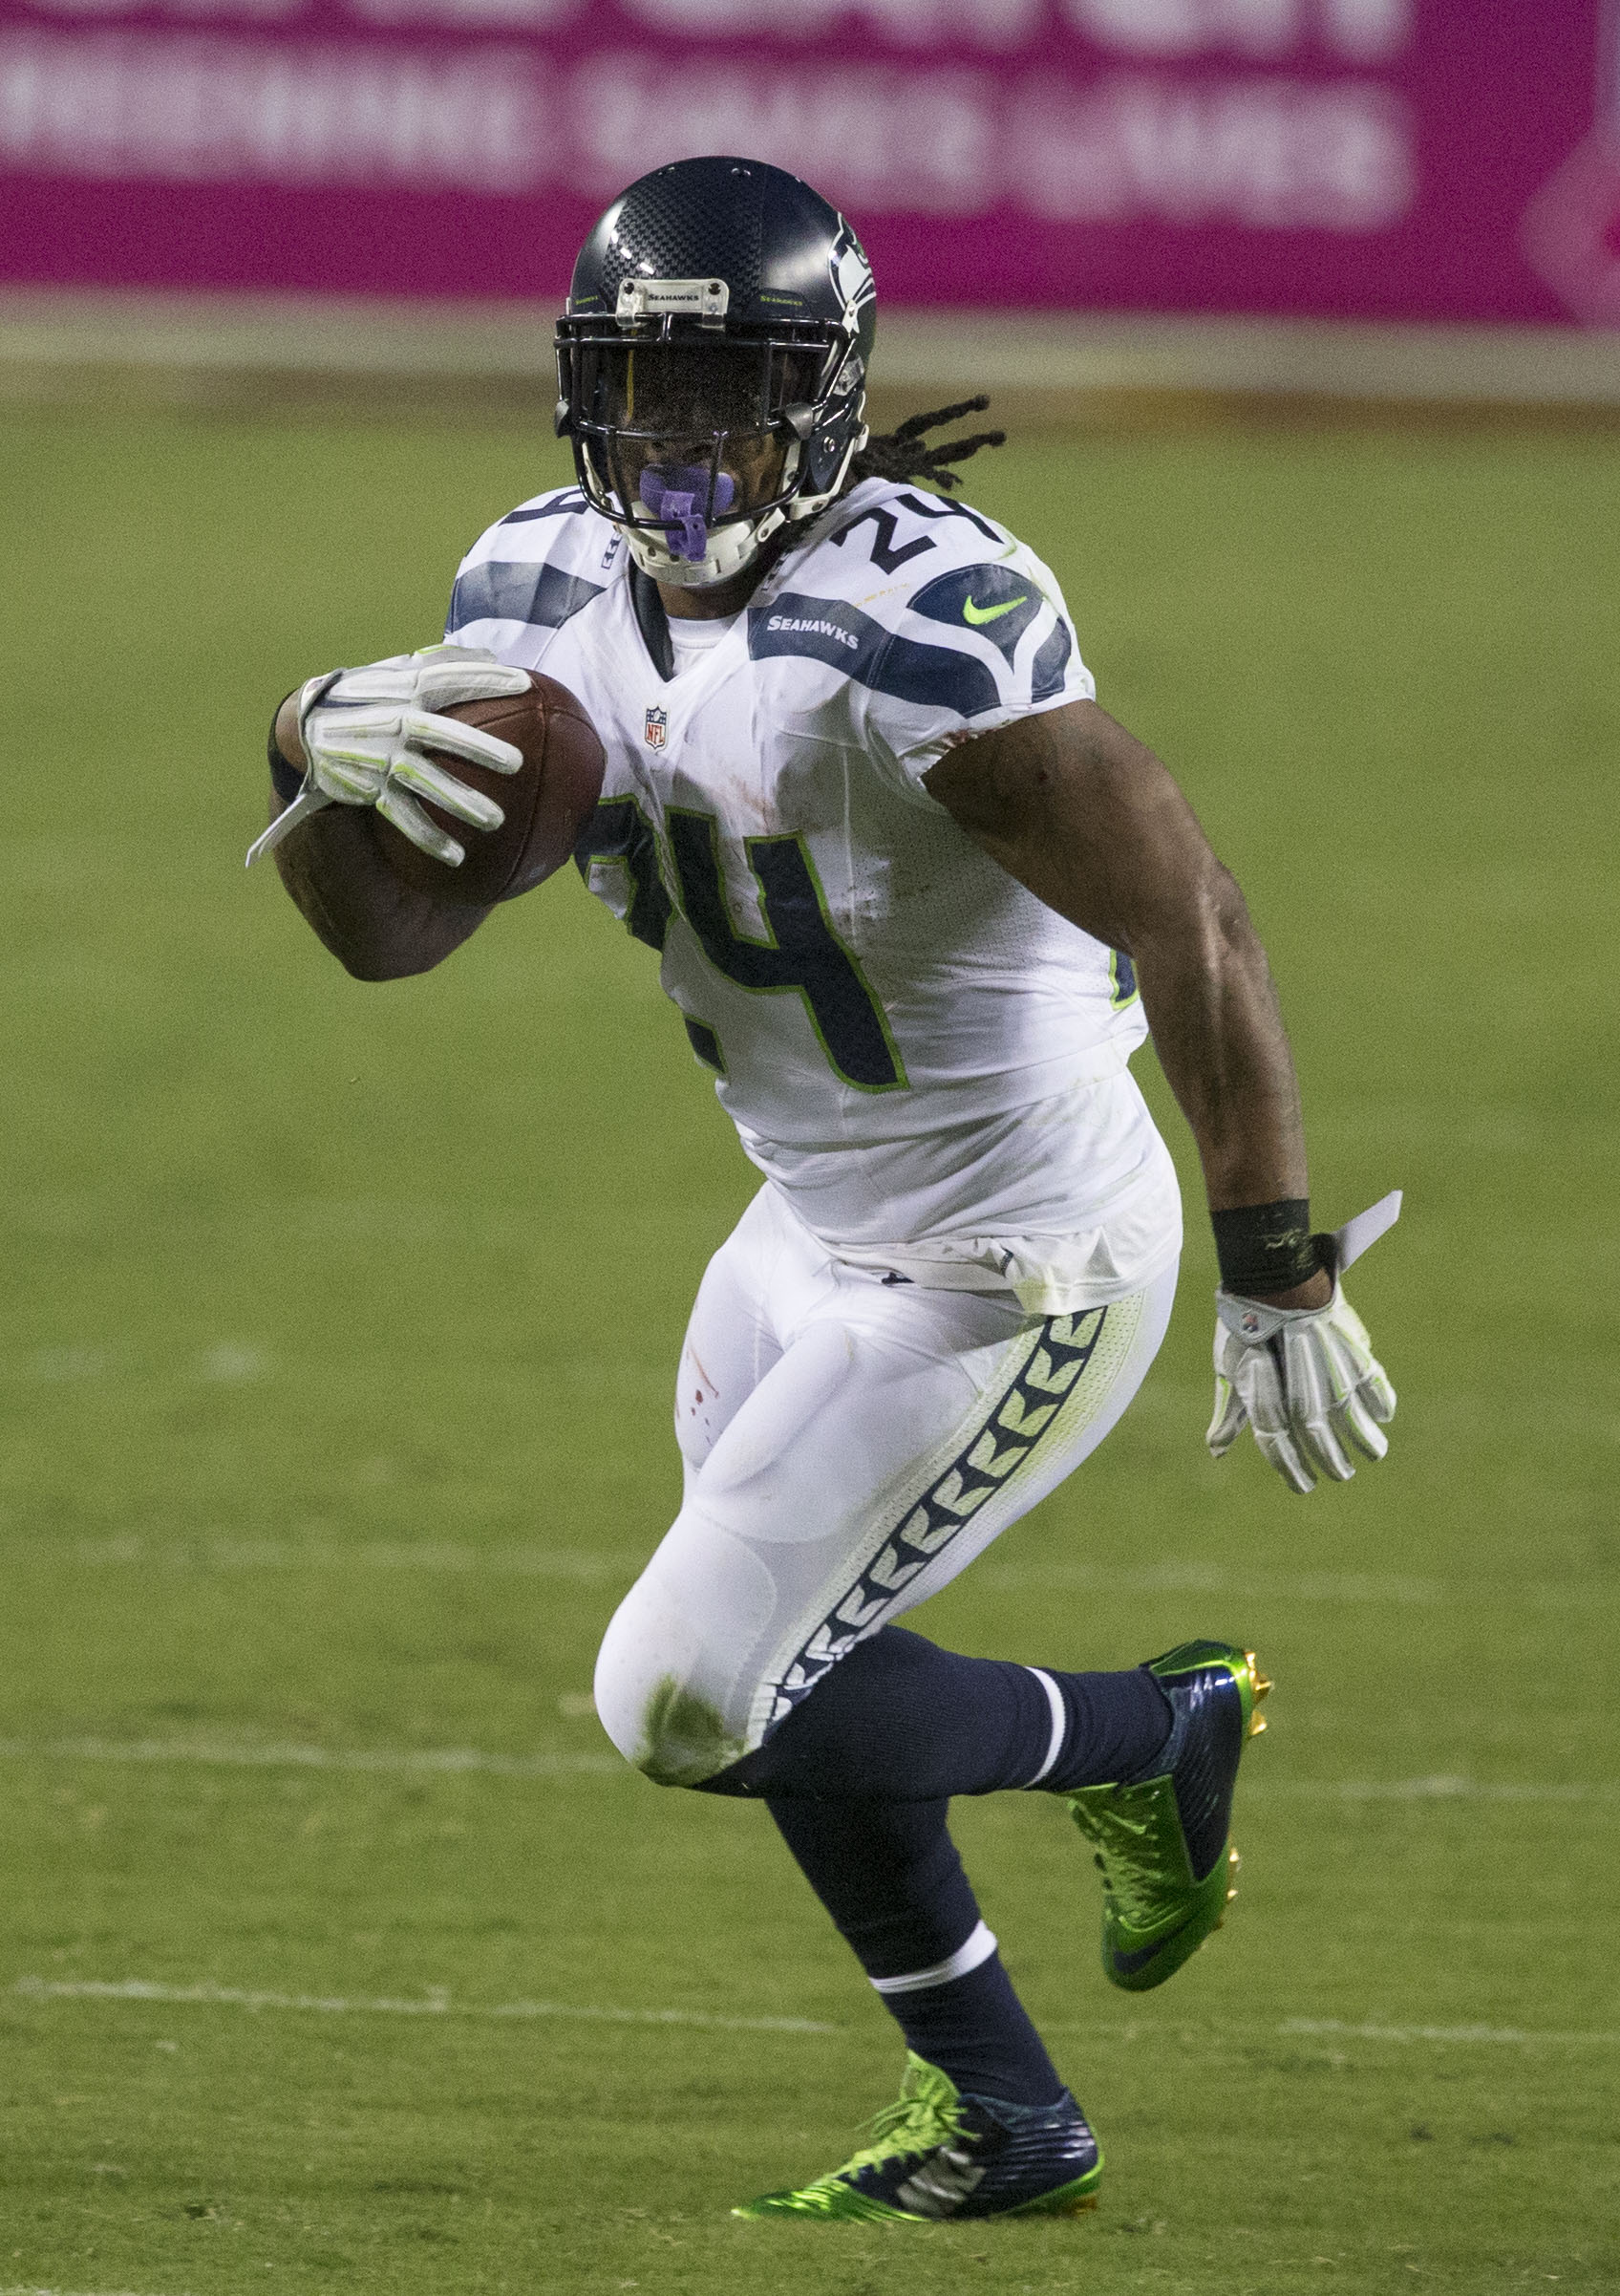 http://upload.wikimedia.org/wikipedia/commons/6/6a/Marshawn_Lynch_vs._Redskins_2014.jpg